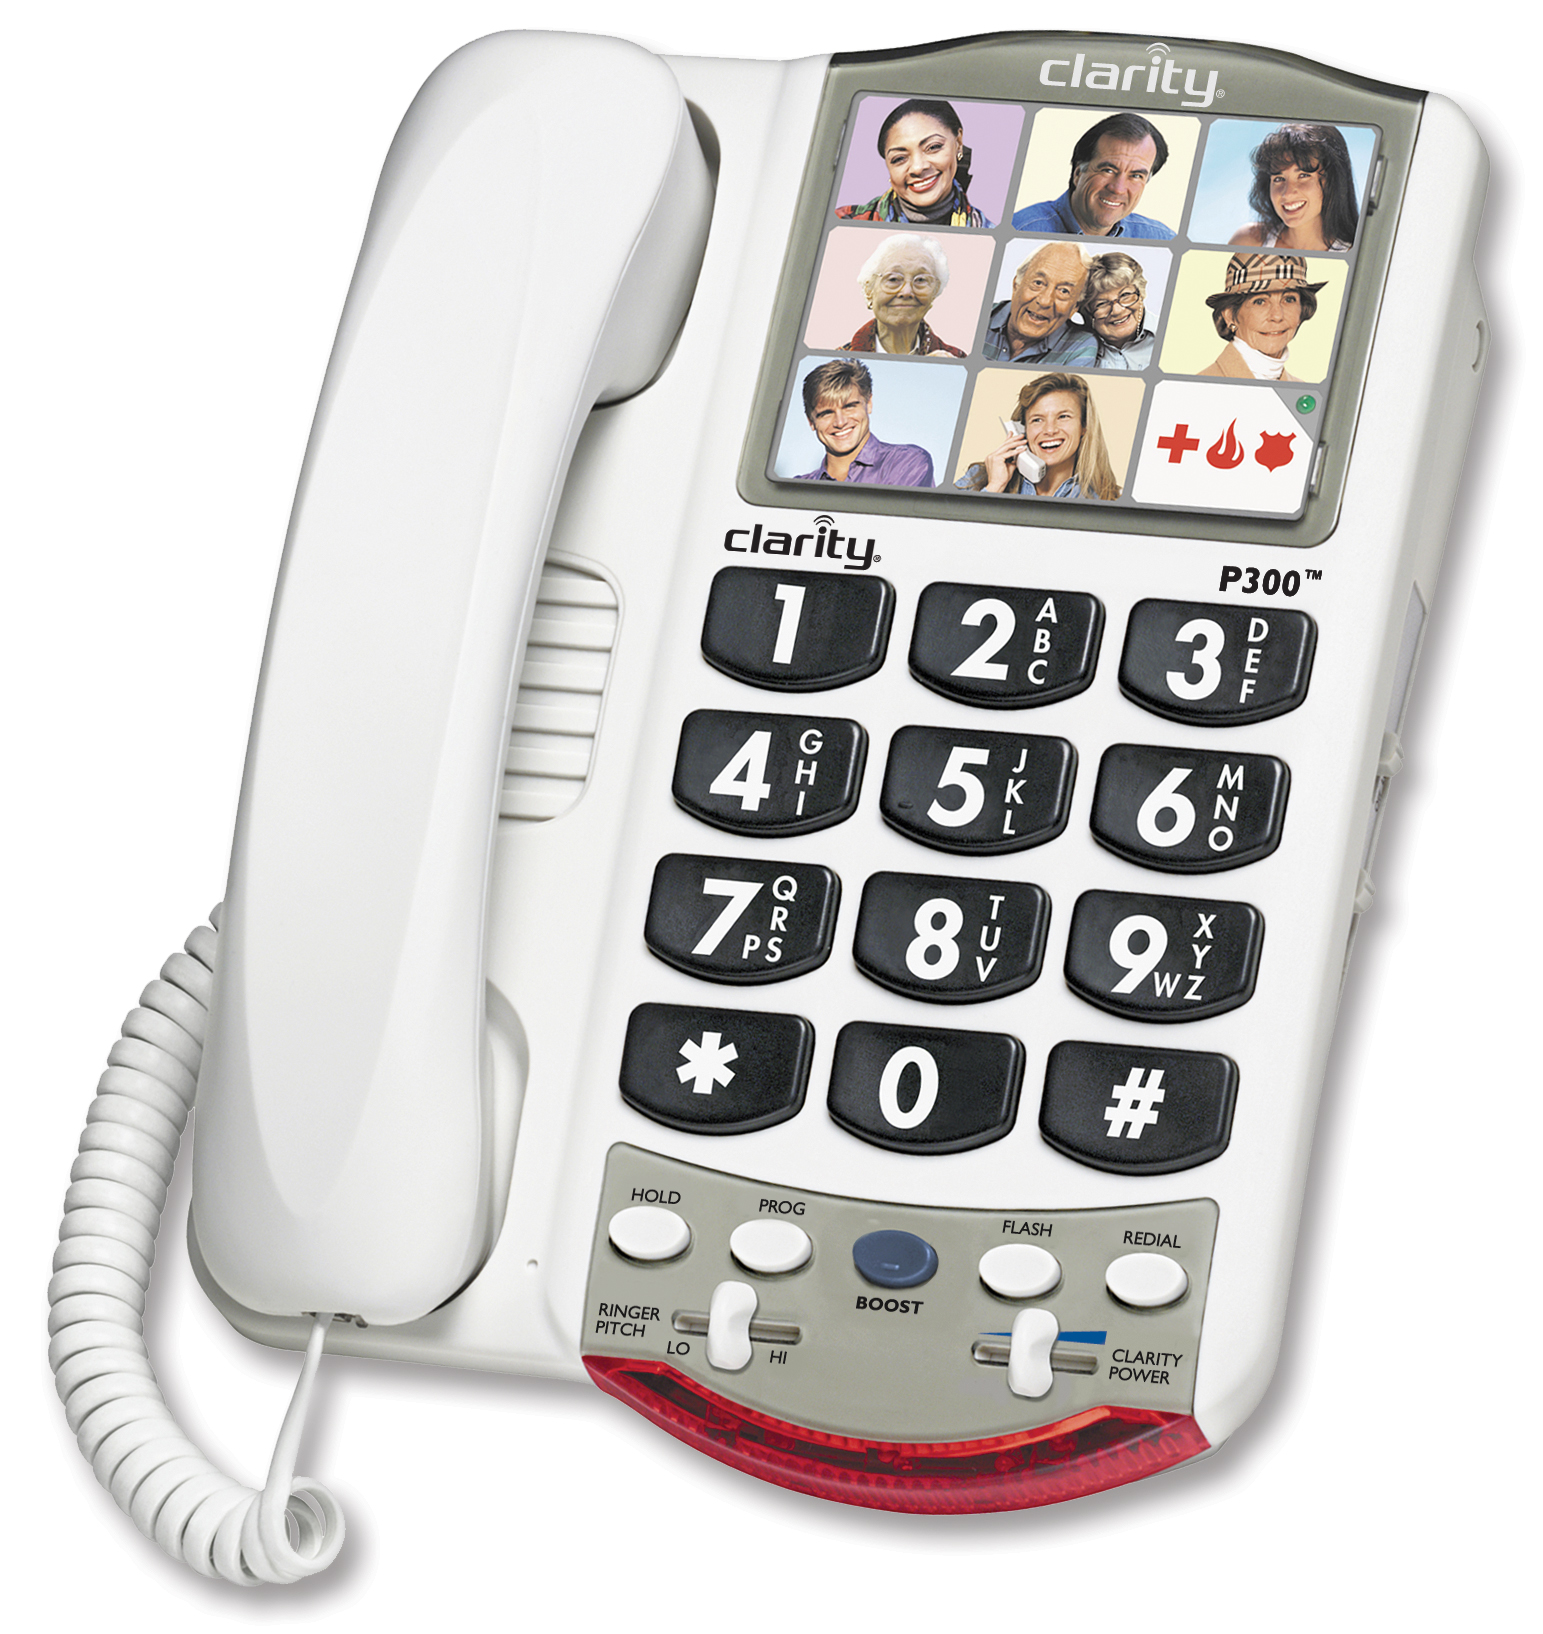 Image for Clarity P300 Handset Landline Telephone from Circuit City